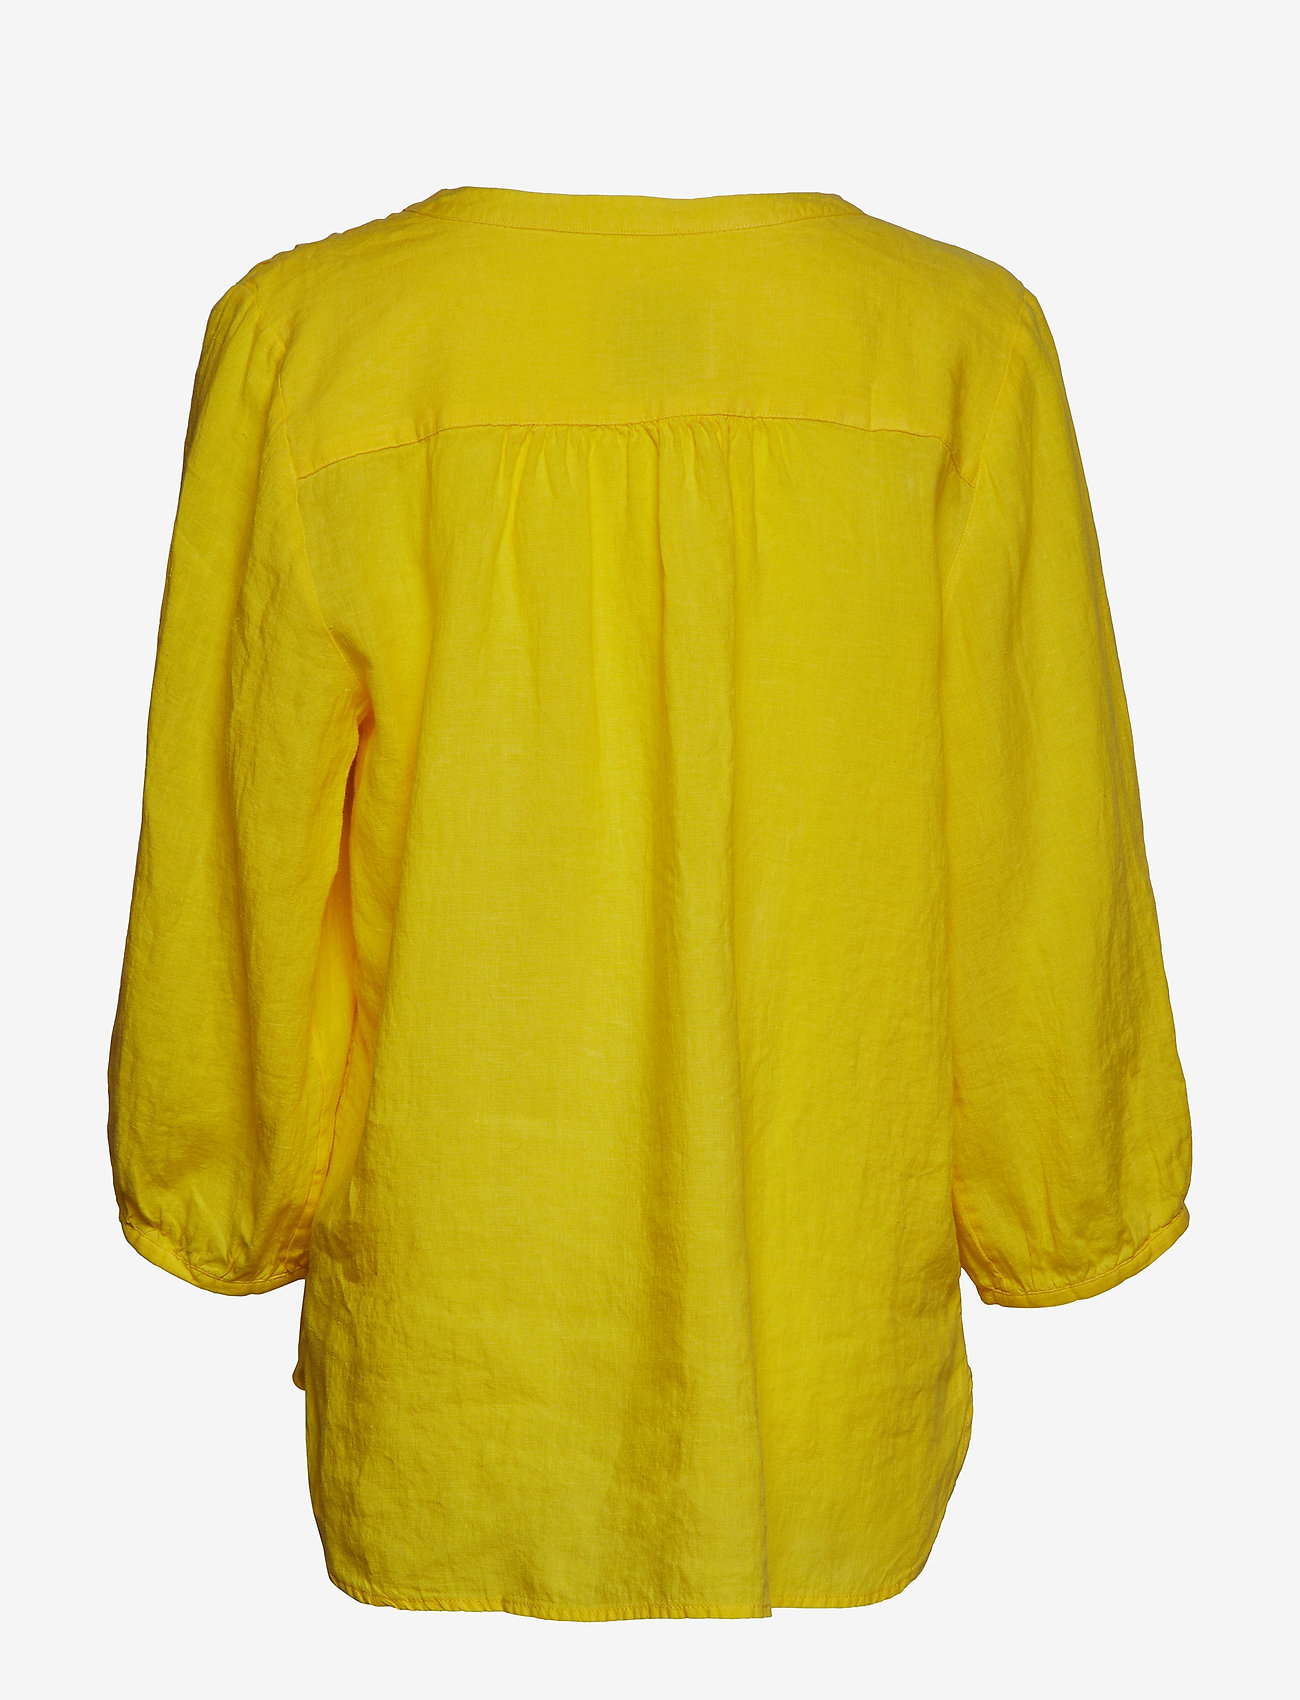 Lydiapw Sh (Primrose Yellow) (27 €) - Part Two pIHgK